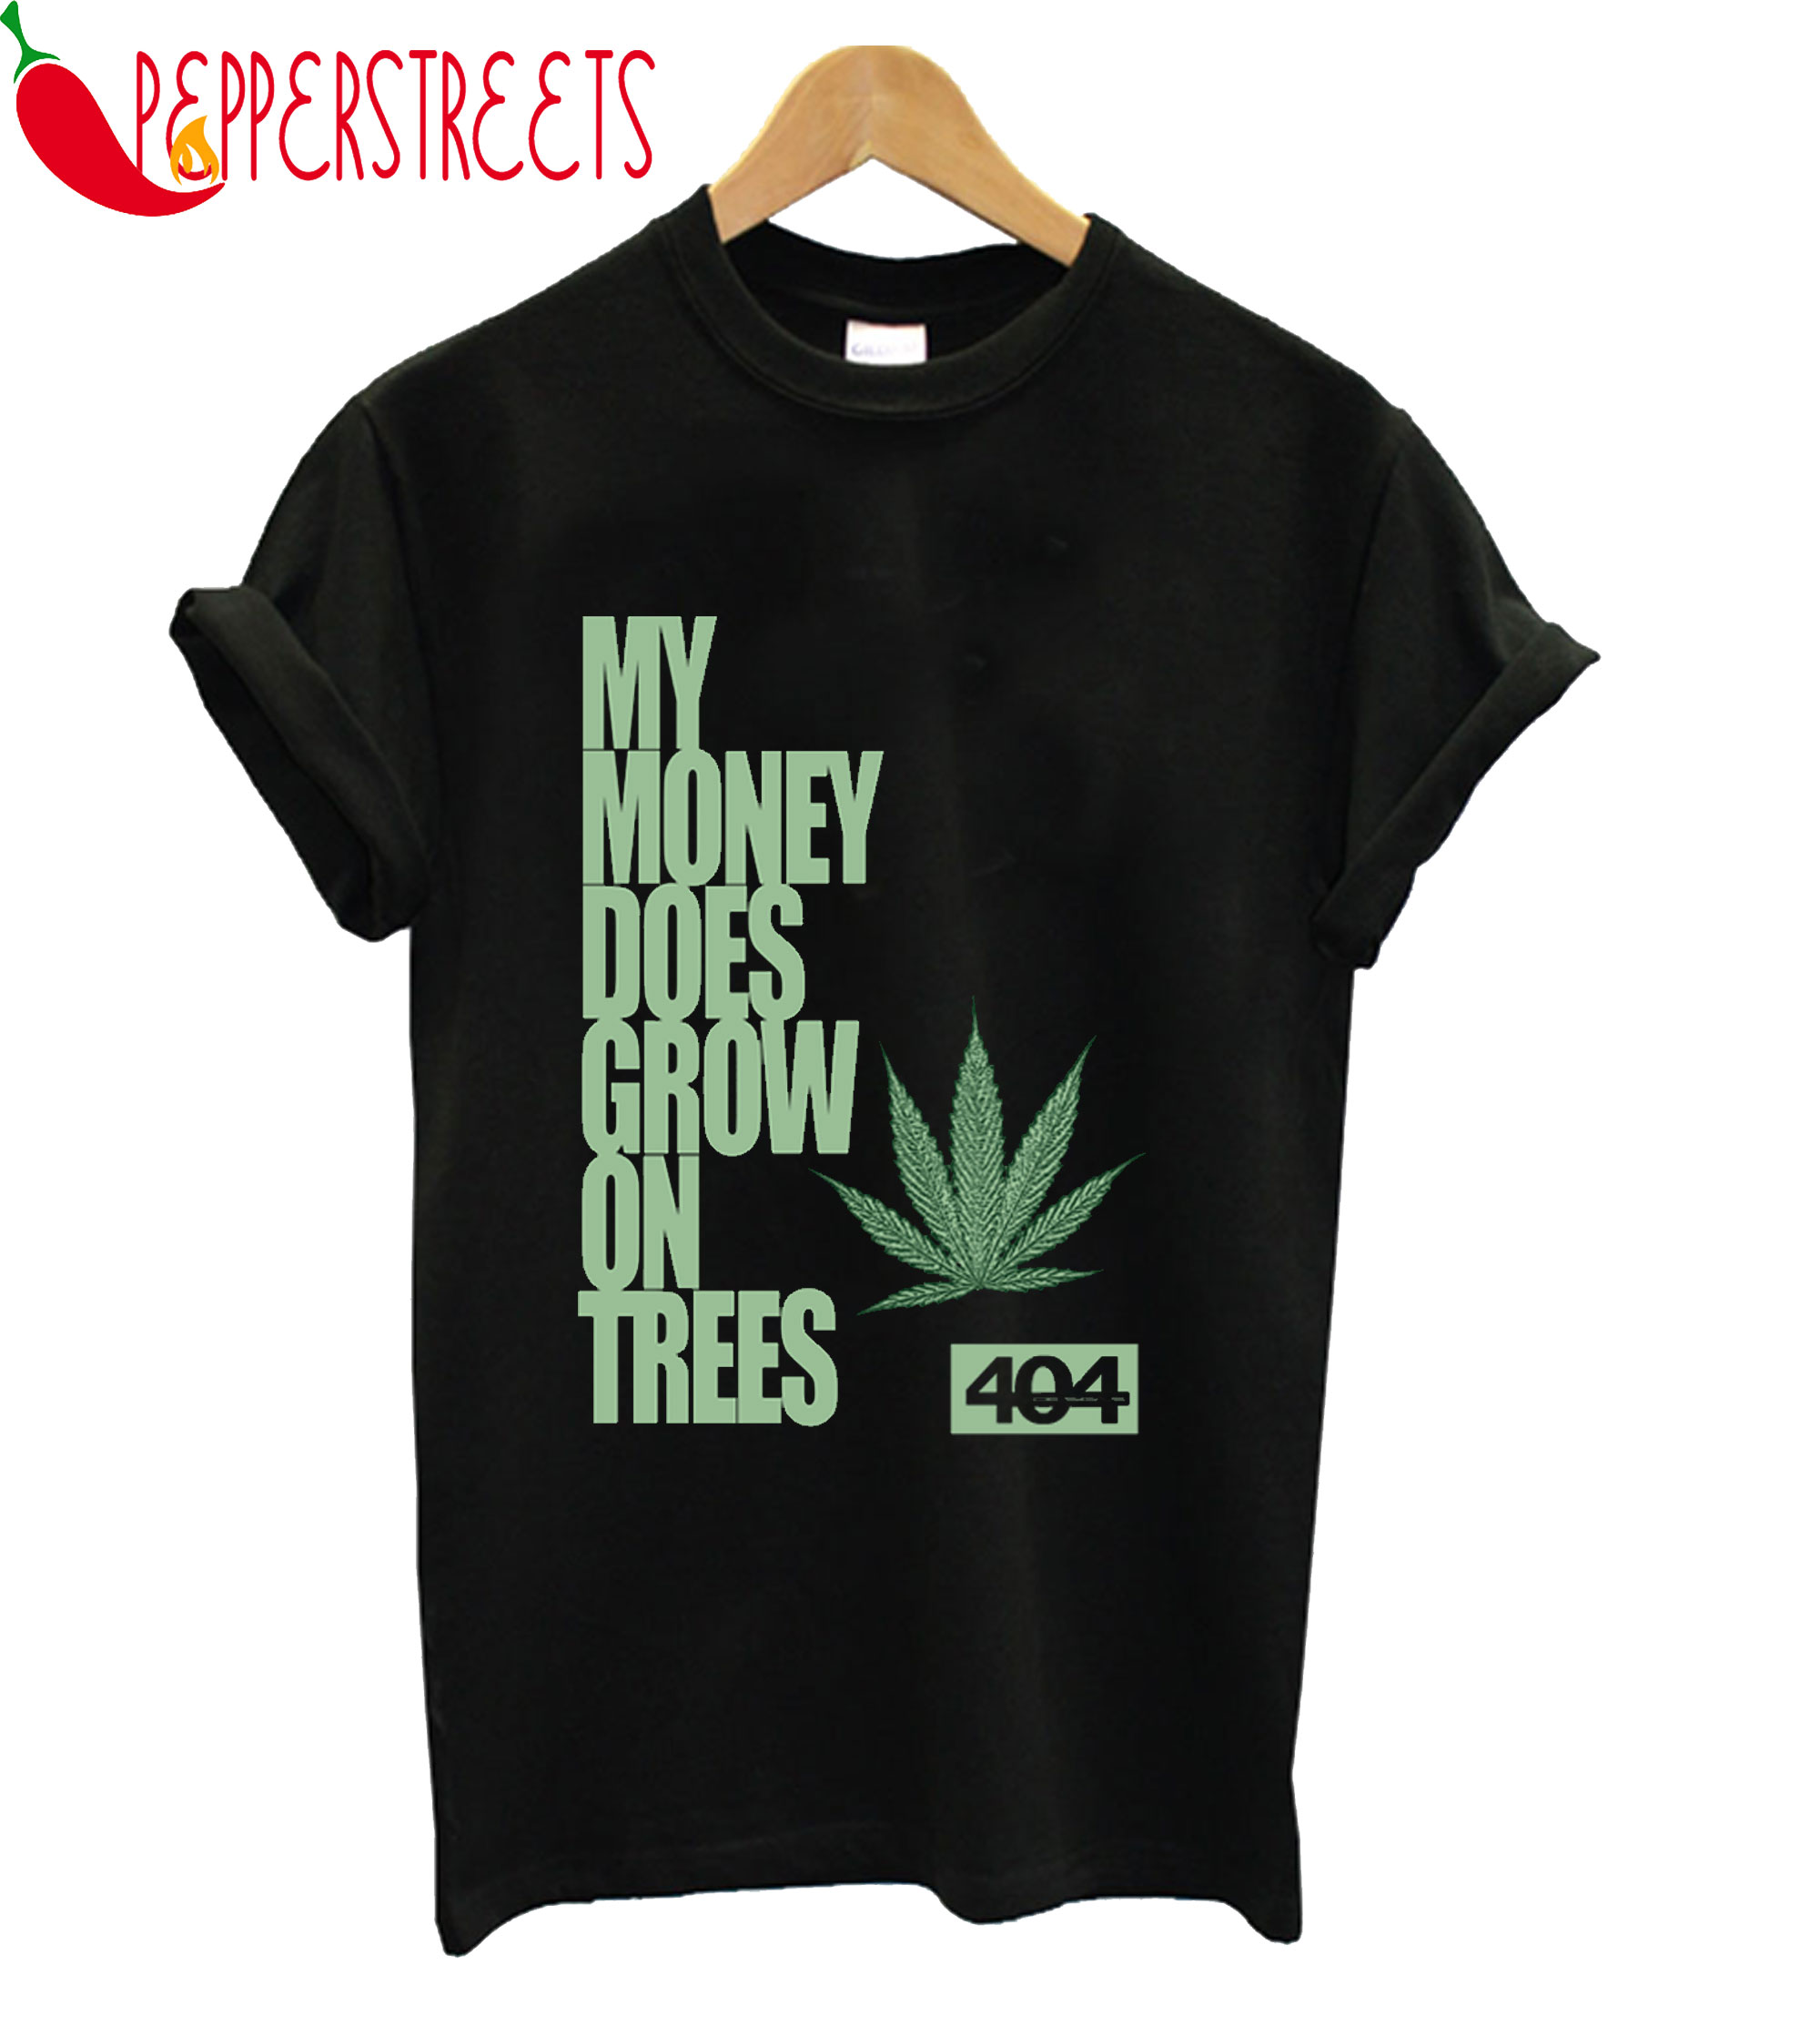 My Money Does Grow On On Trees T-Shirt